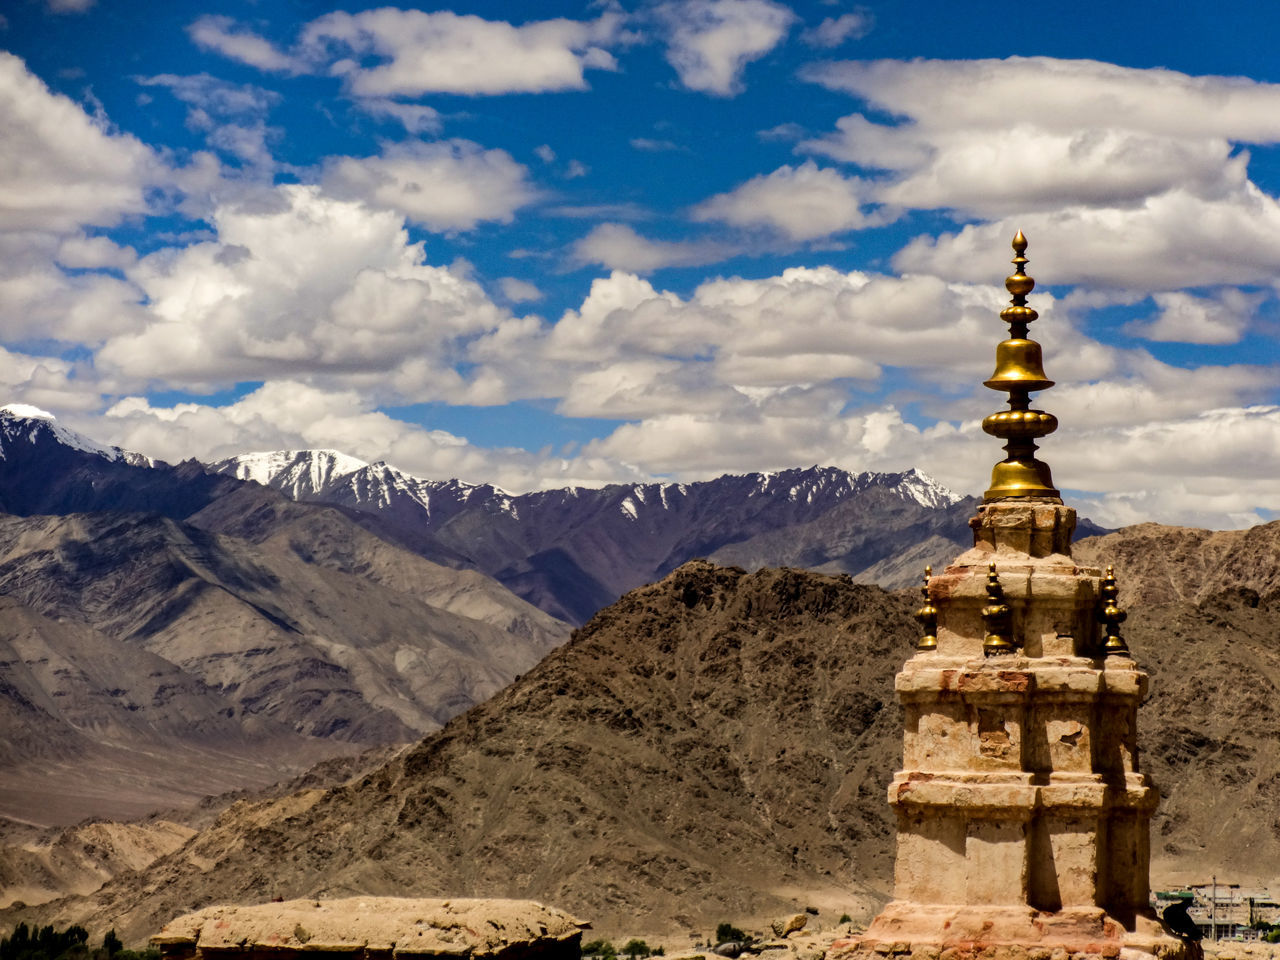 Leh Ladakh India Travel Destinations Religion Travel Mountain Scenics Landscape Spirituality Place Of Worship No People Pilgrimage Architecture Outdoors Cloud - Sky Dome Sky Day Minimalism Travel Cloud Formations Snowcapped Mountain Landscapes Mountains And Sky Travel Photography